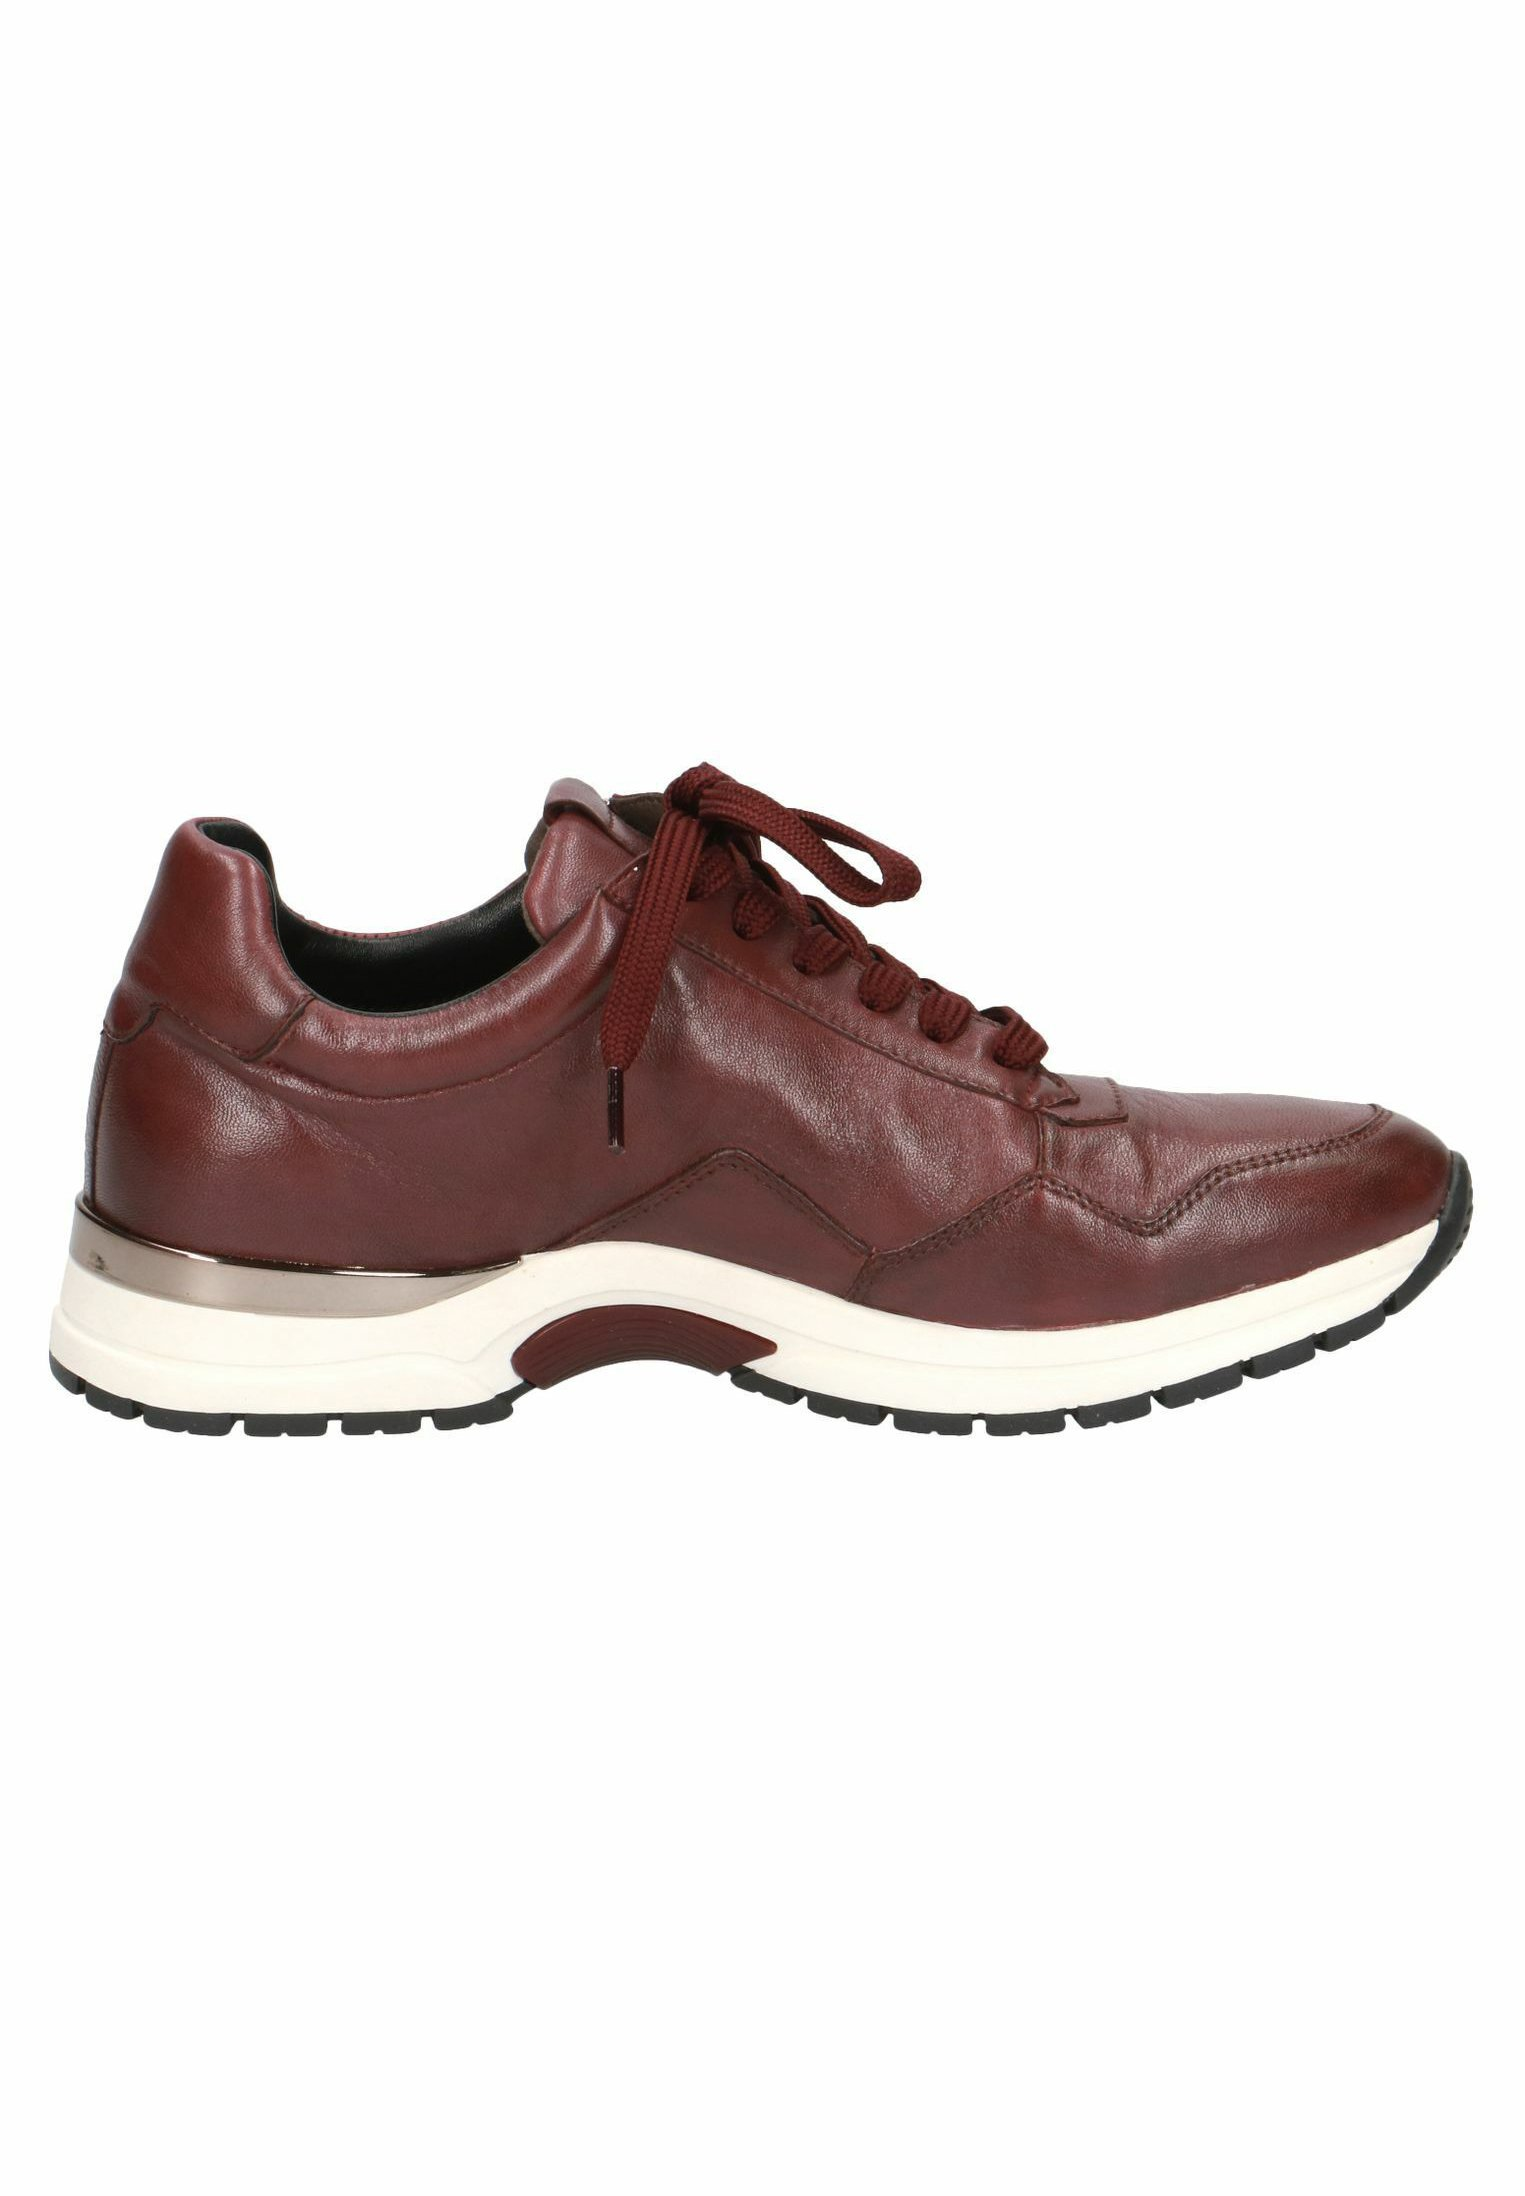 SNEAKER Sneakers bordeaux soft